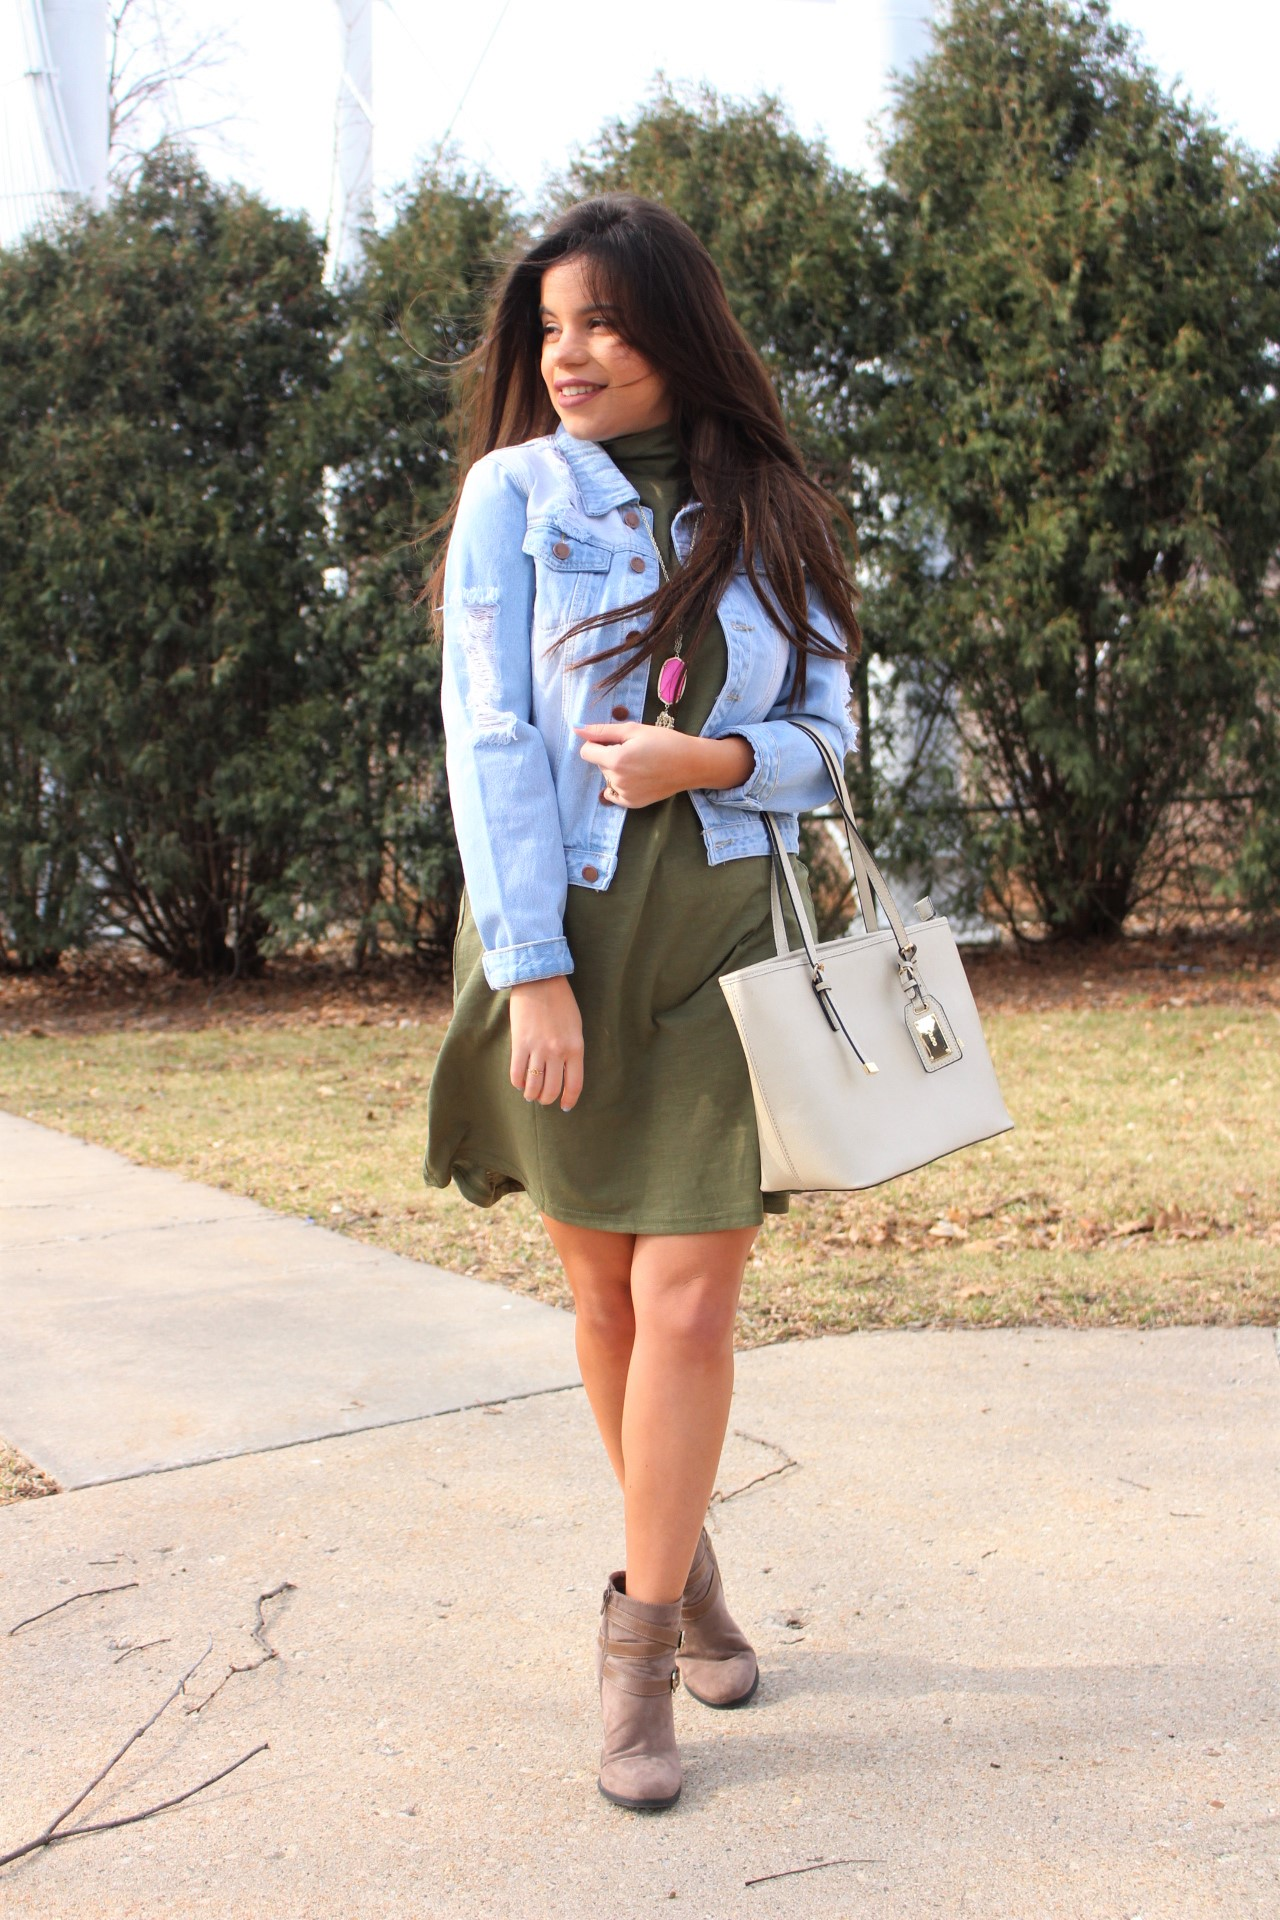 makeme chic military dress ootd jean jacket ALDO spring outfit handbag by alejandra avila